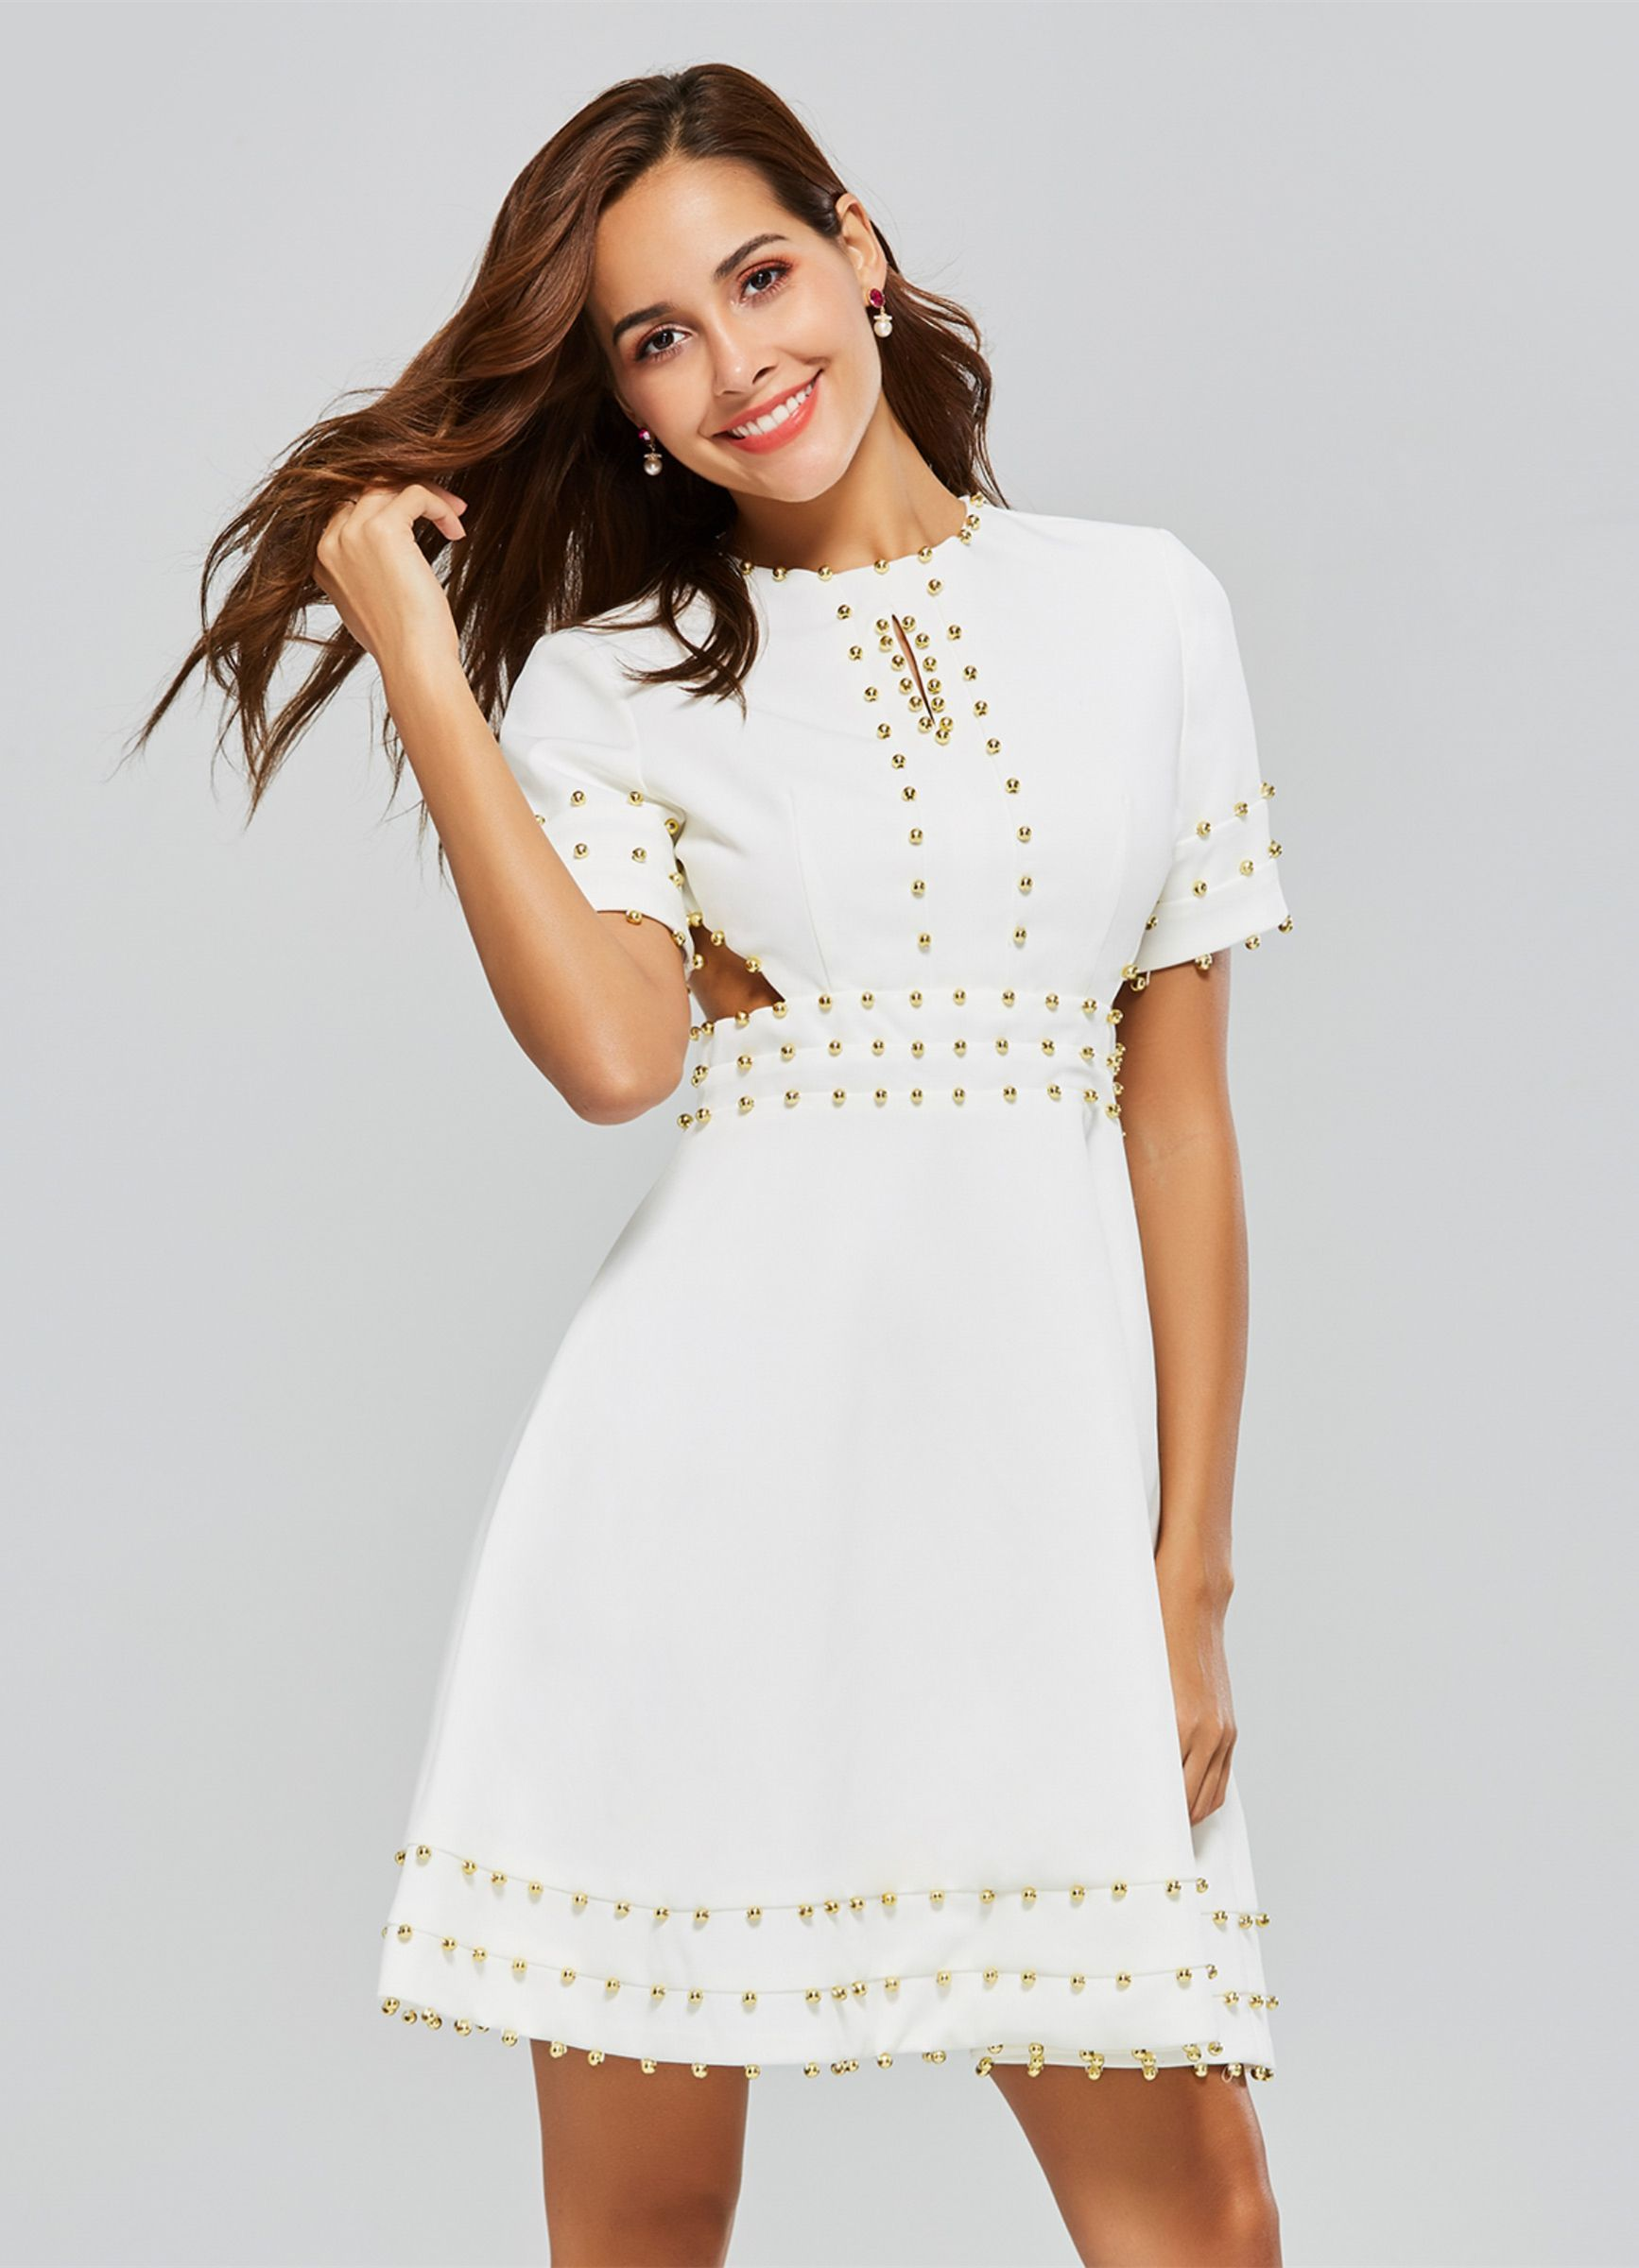 d9d71a846e White Short Sleeve Rivets Women's Day Dress | TBdress Dresses ...